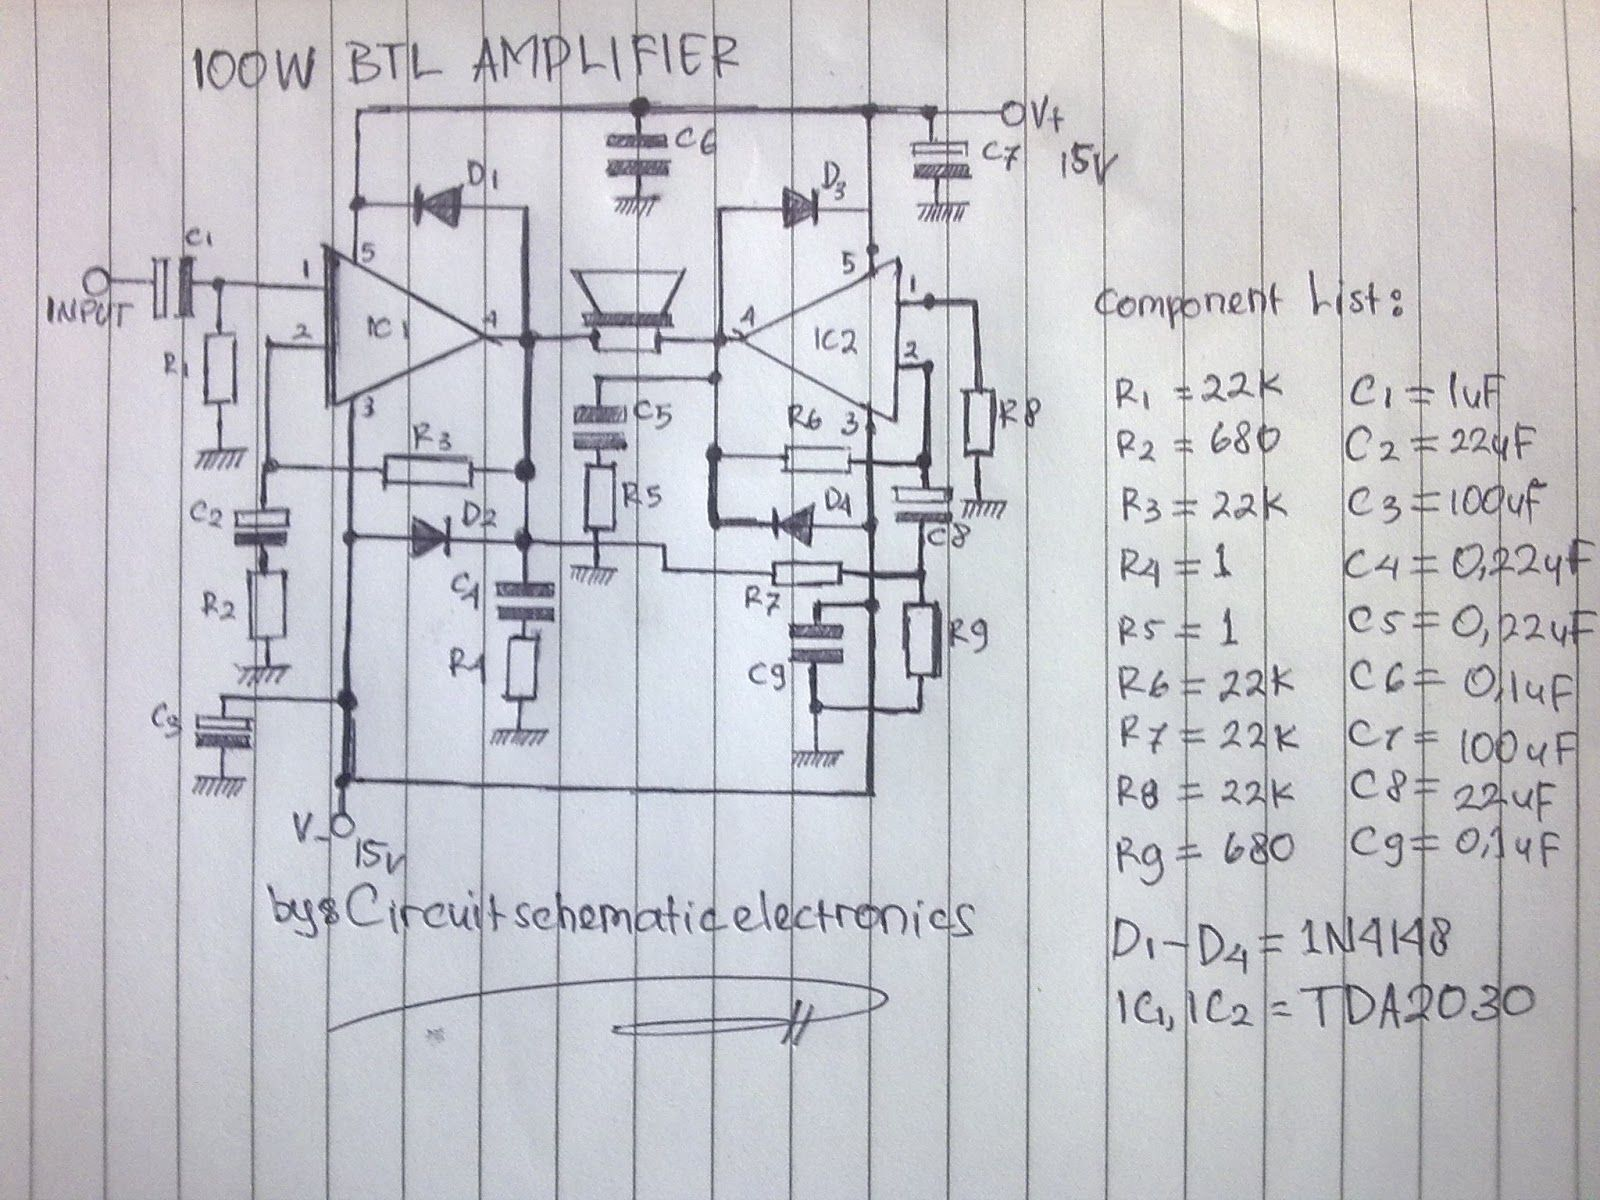 small resolution of 100w btl tda2030 amplifier circuit